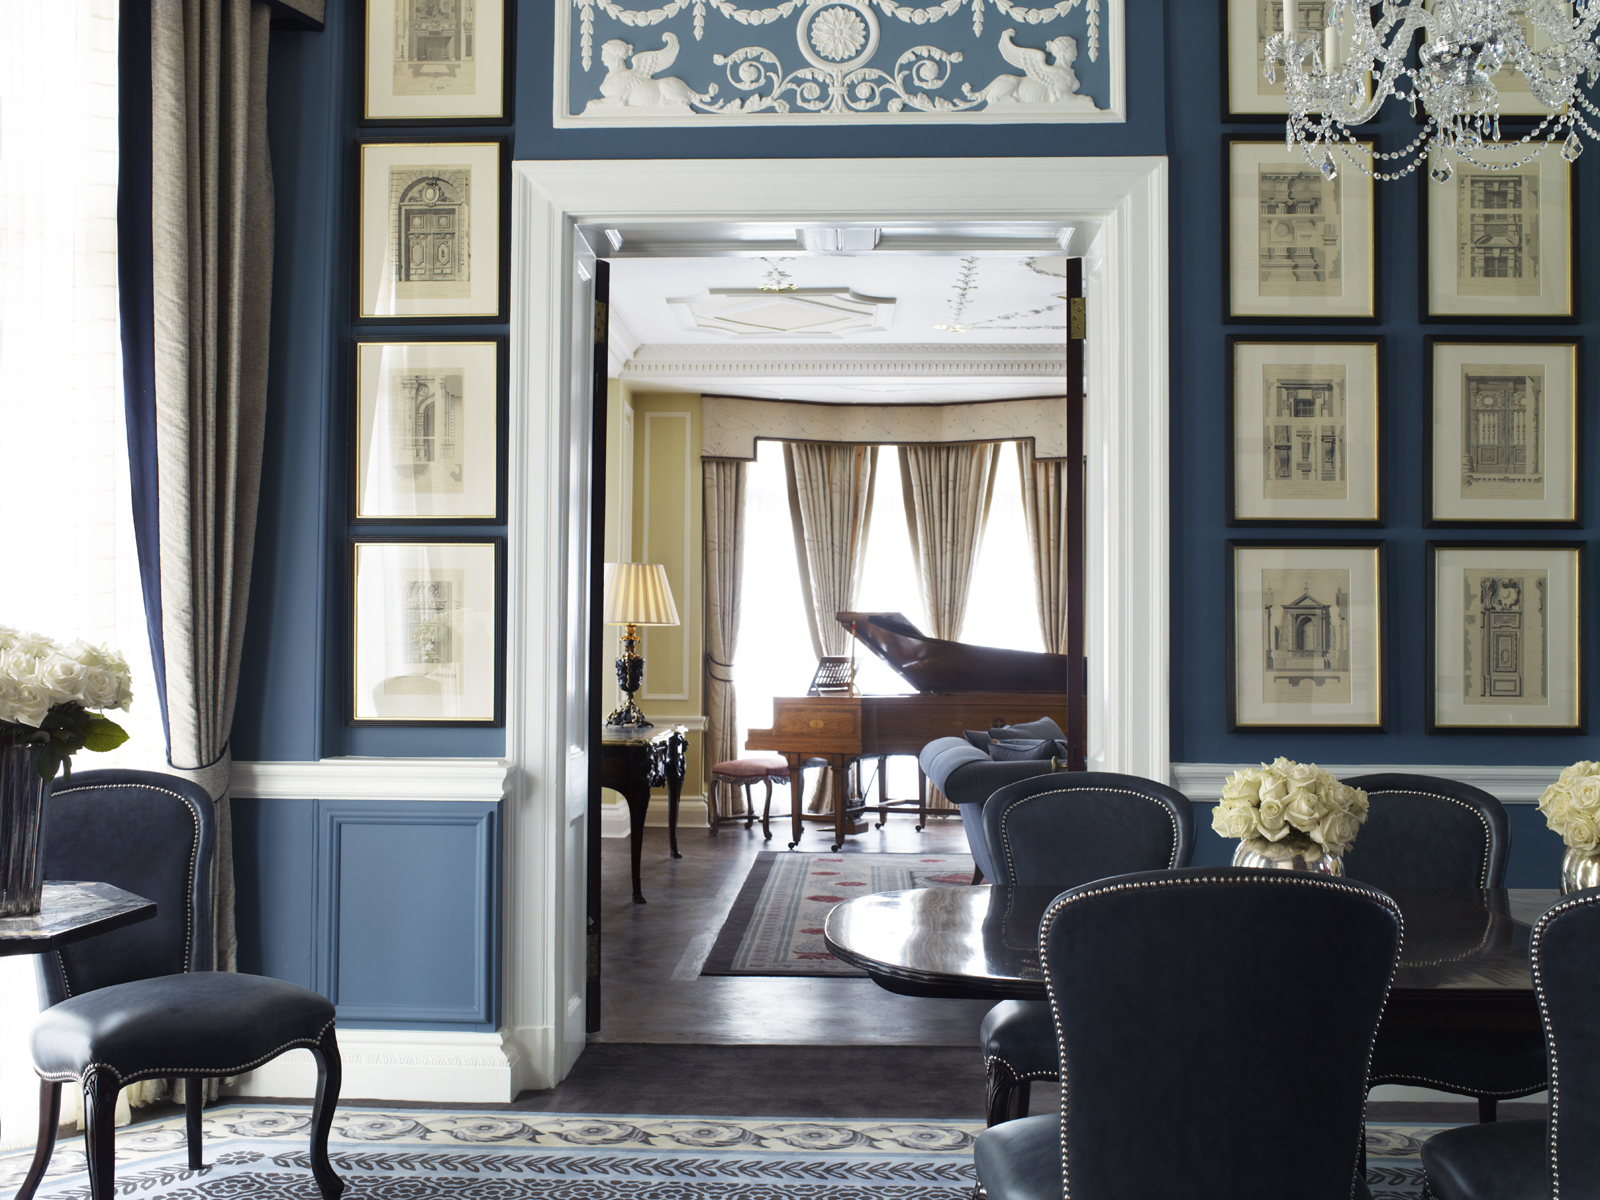 Claridges Royal Suite